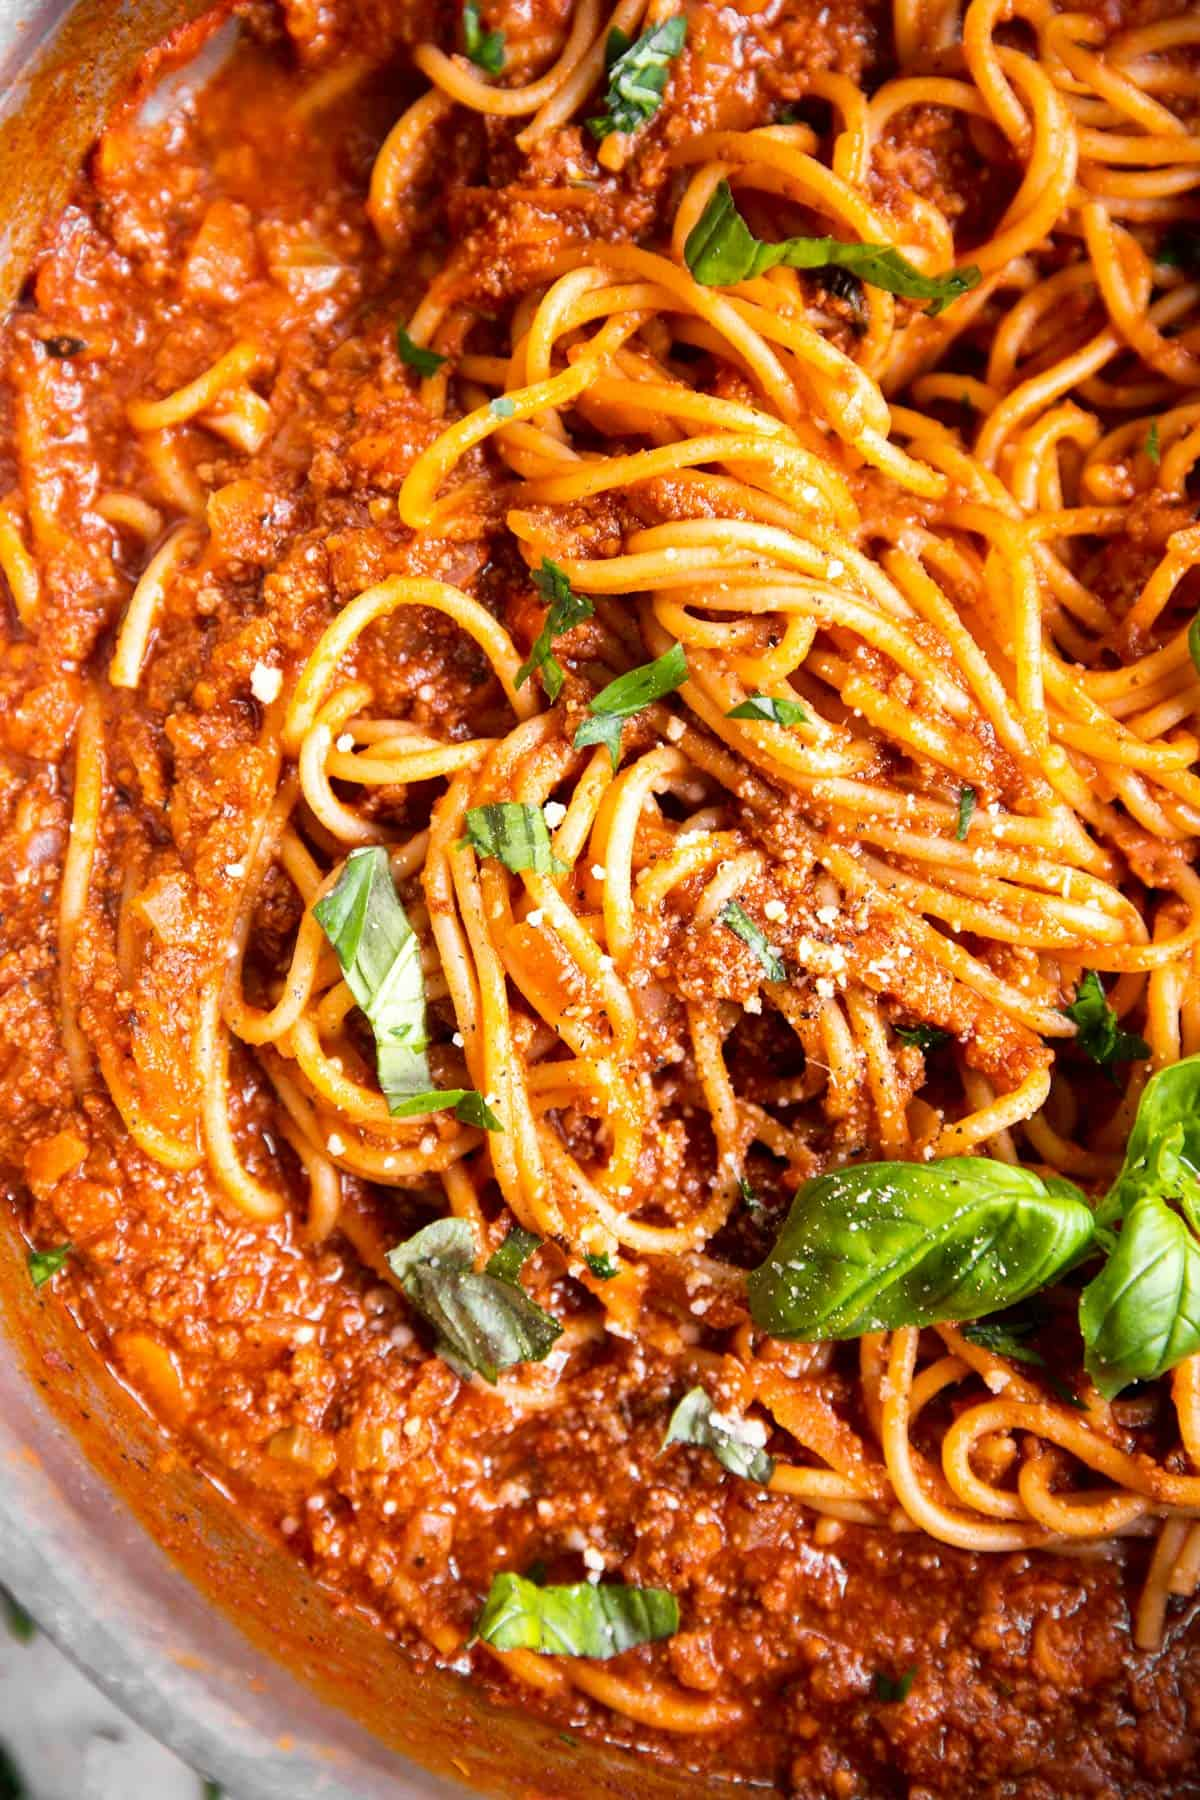 close up photo of spaghetti and meat sauce in pan